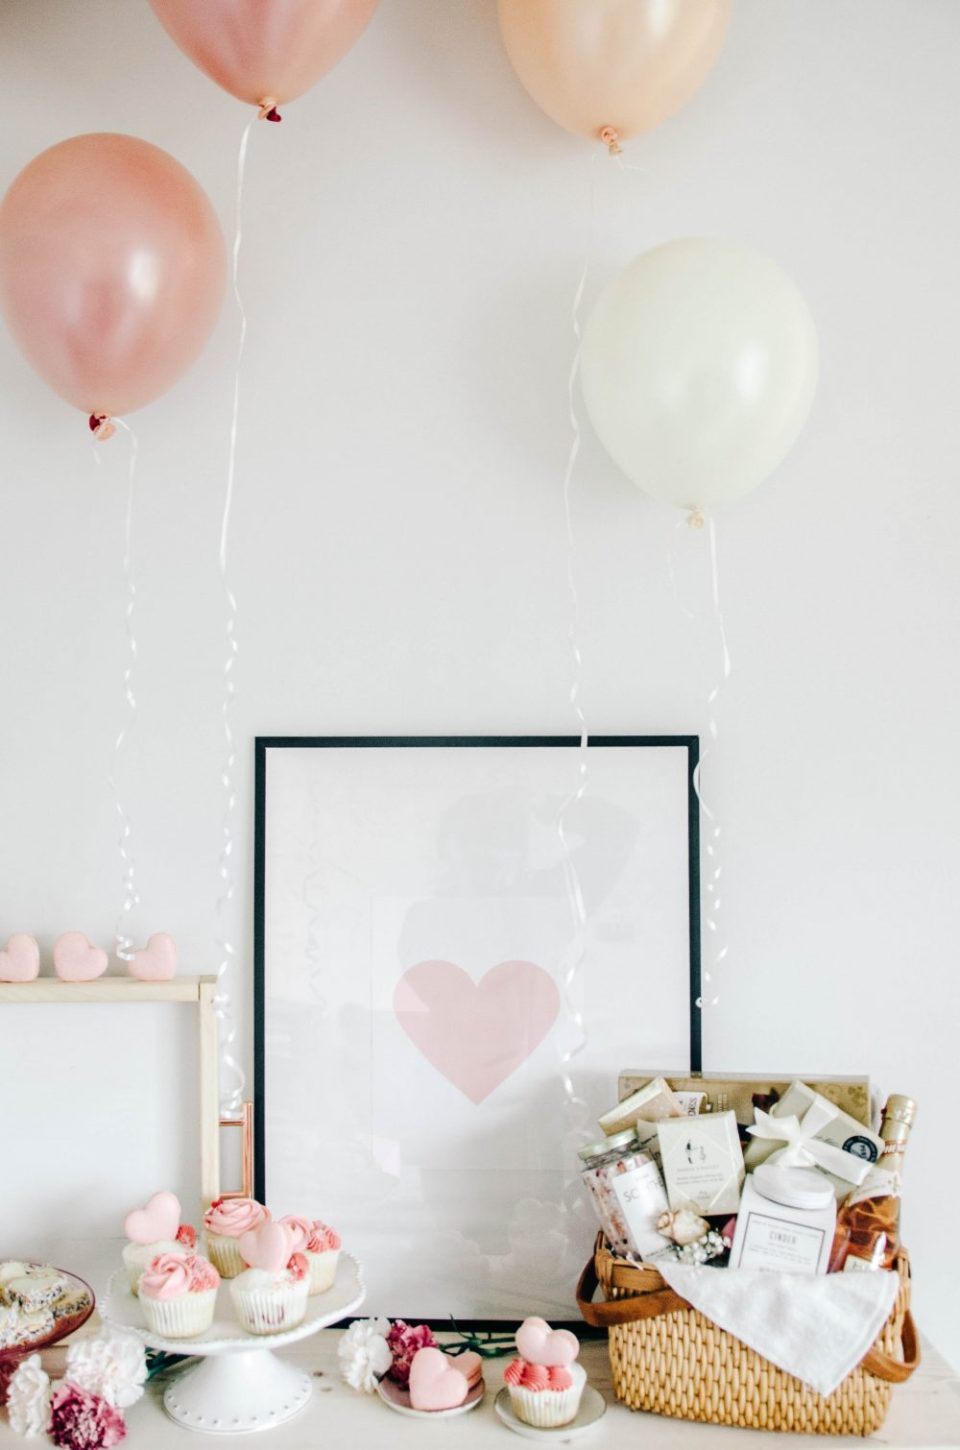 Valentine's Party Decor Inspiration | Valentine's Themed Gift Ideas